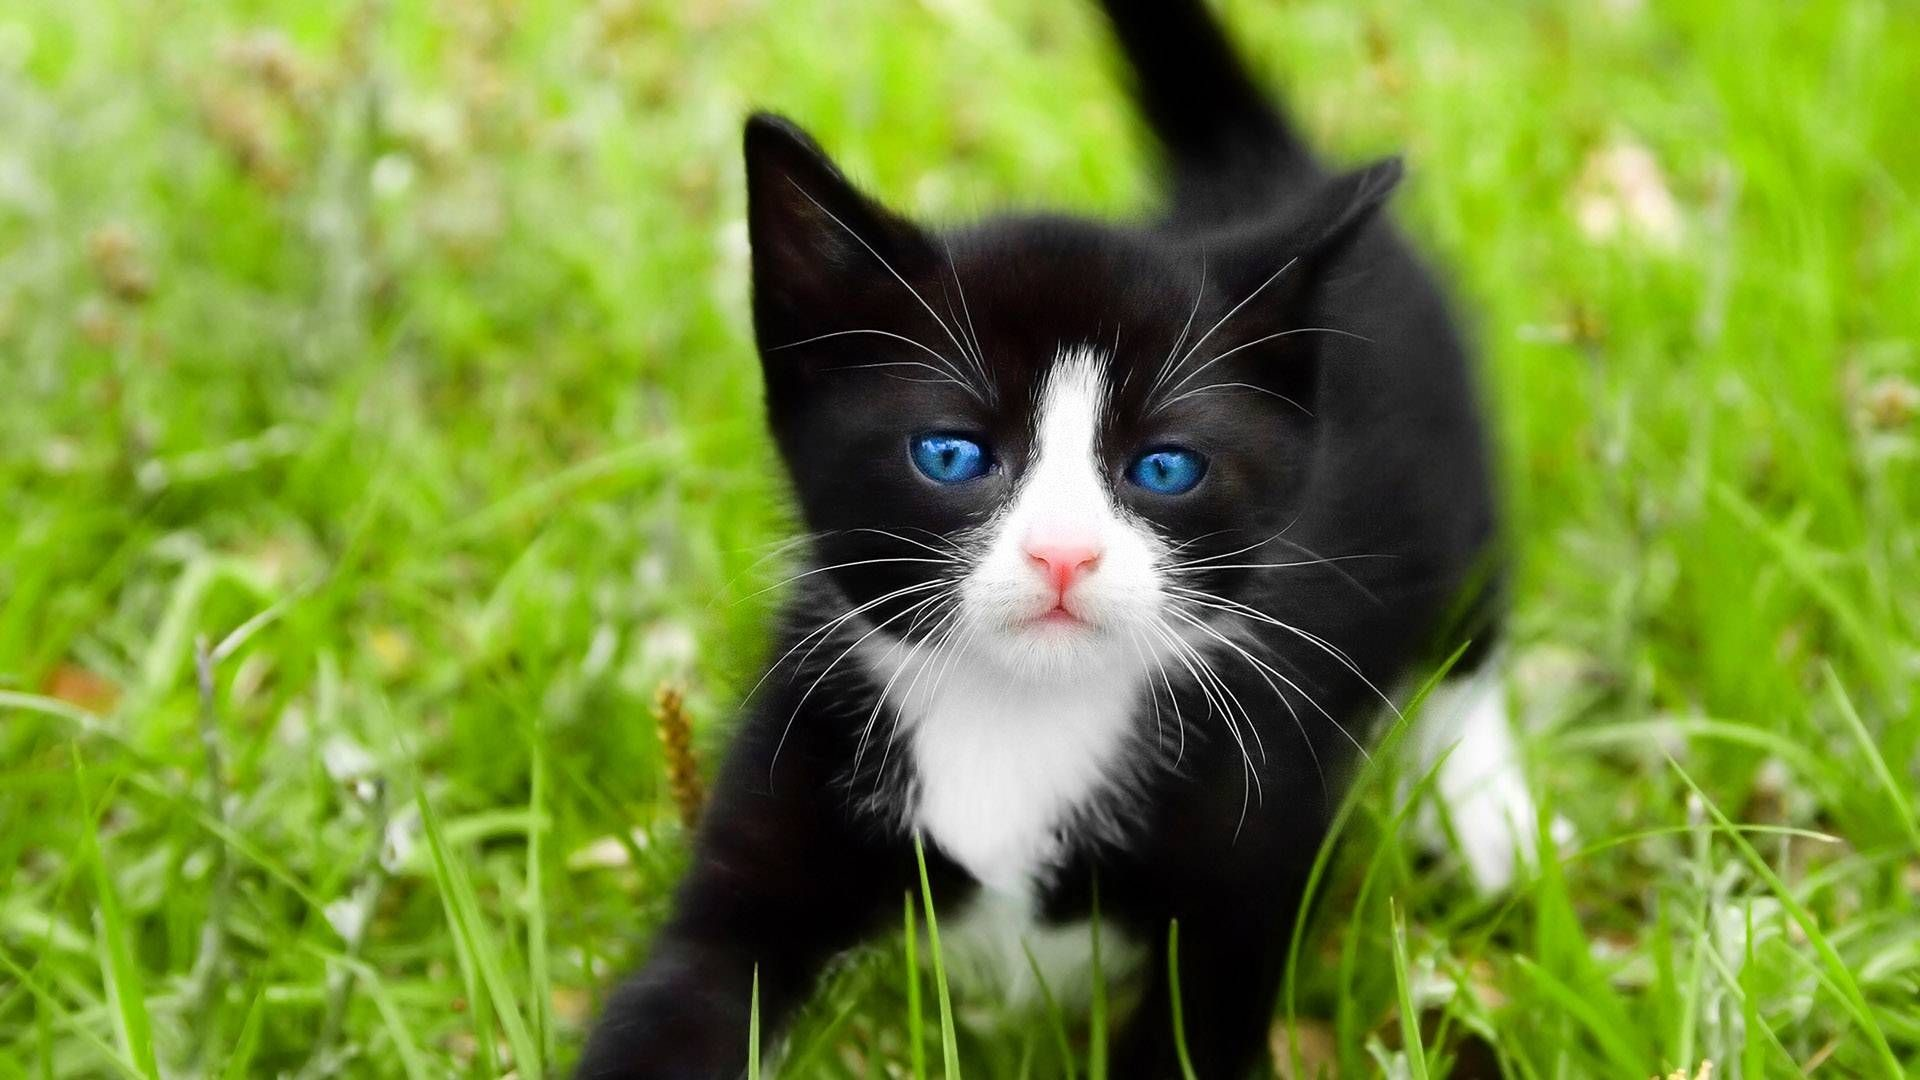 1920x1080 Cute Kitten Full HD Quality Wallpapers